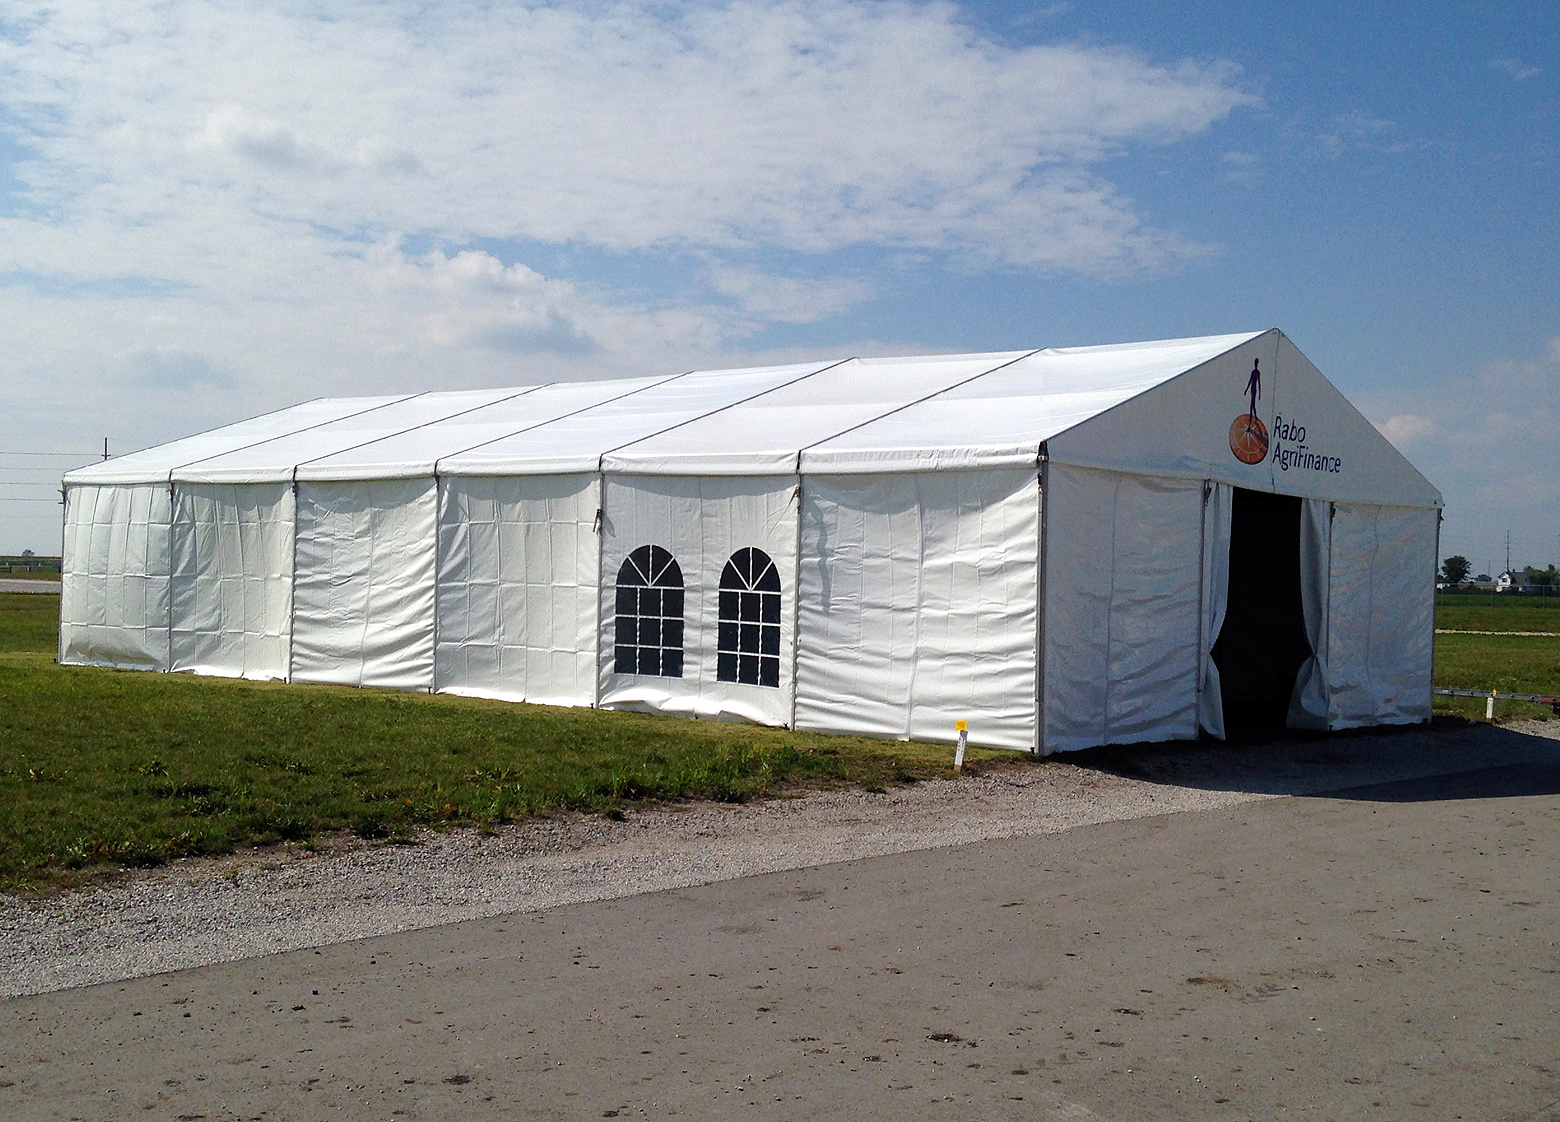 Outside the 30u2032 x 60u2032 (9m x 18m) Losberger clearspan temporary structure/ tent. & Bleacher tent u0026 party rental Aurora IL: Est. delivery fee